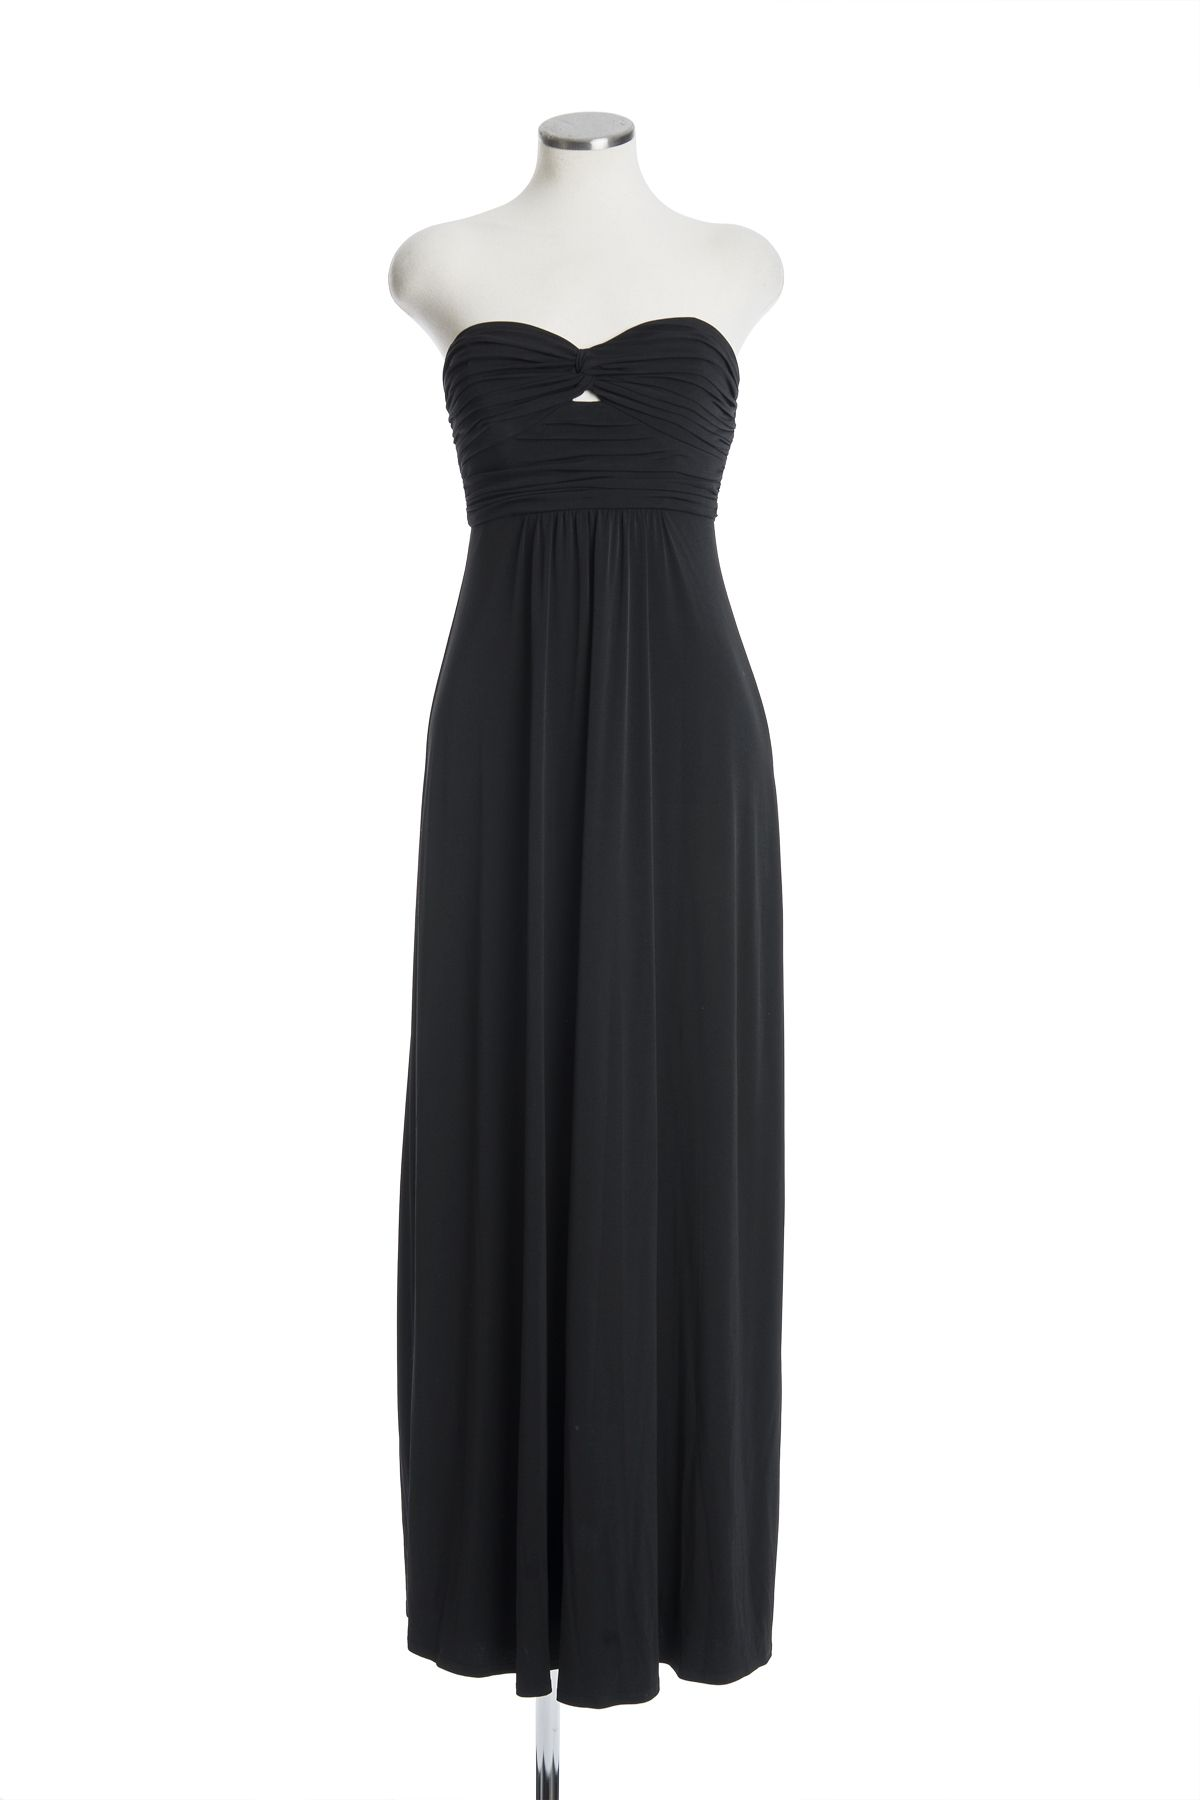 December th shine on new years eve in this classic long strapless